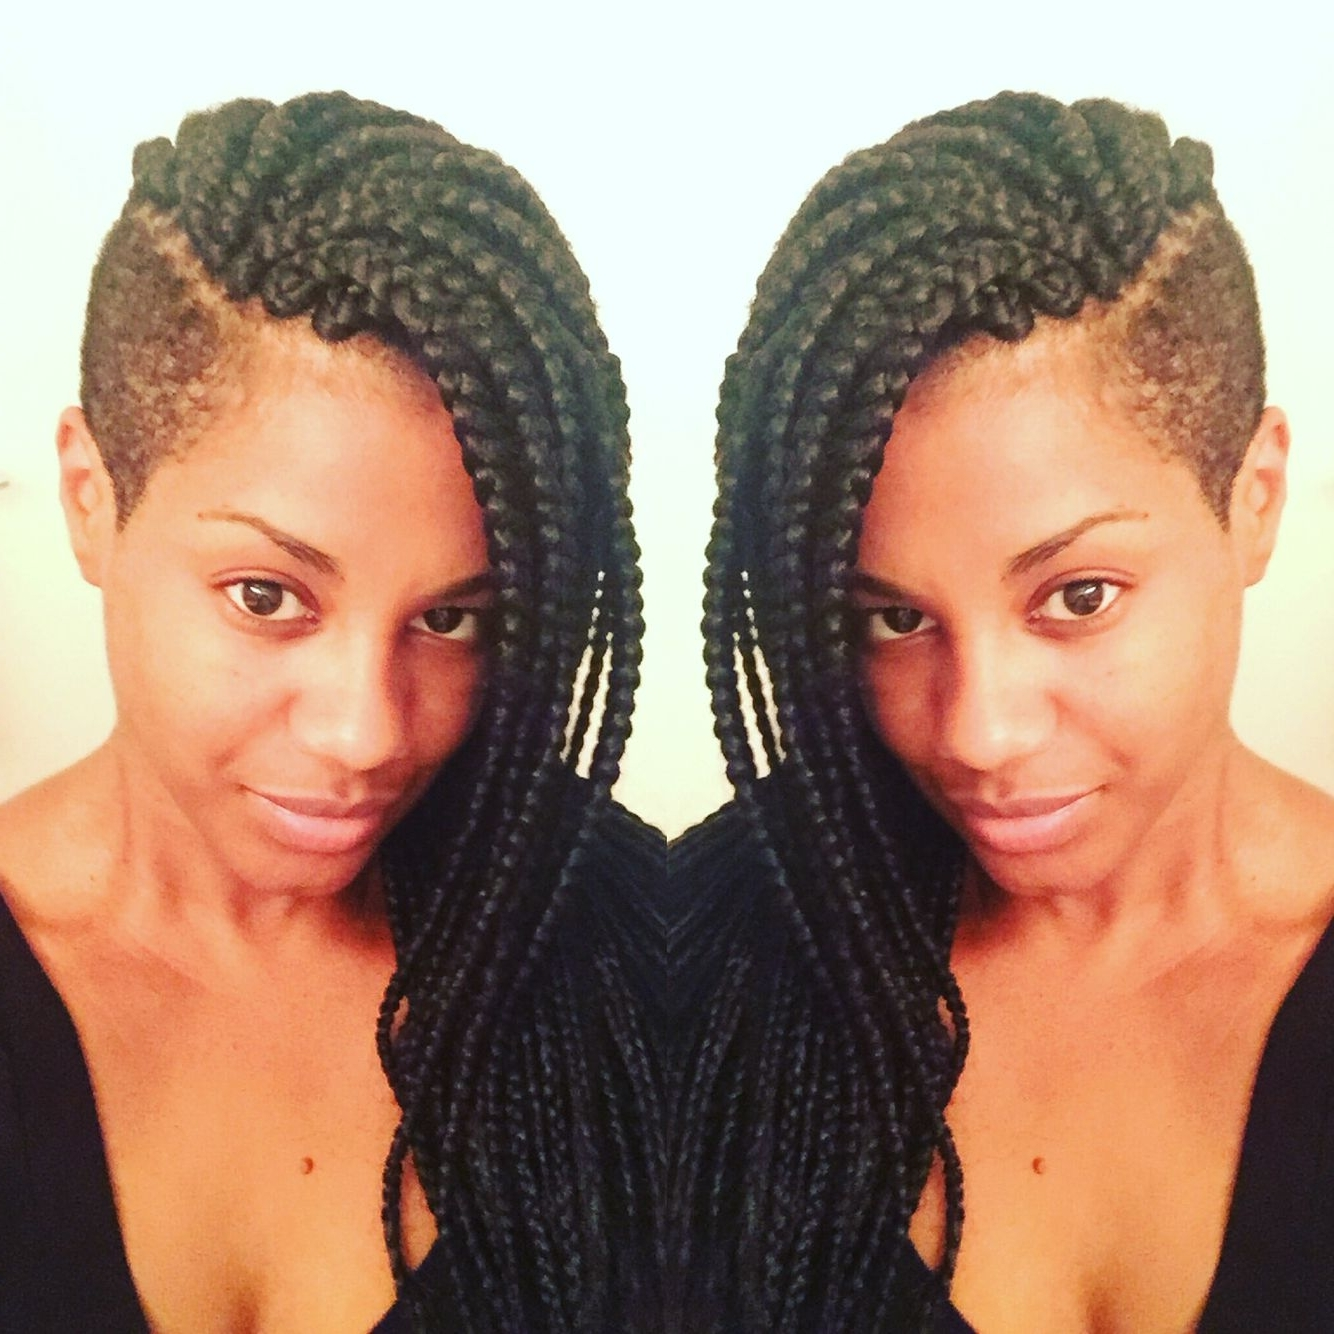 Most Popular Braided Hairstyles With Tapered Sides For Love My Hair With Tapered Sides! #braids #shaved Sides (View 11 of 15)